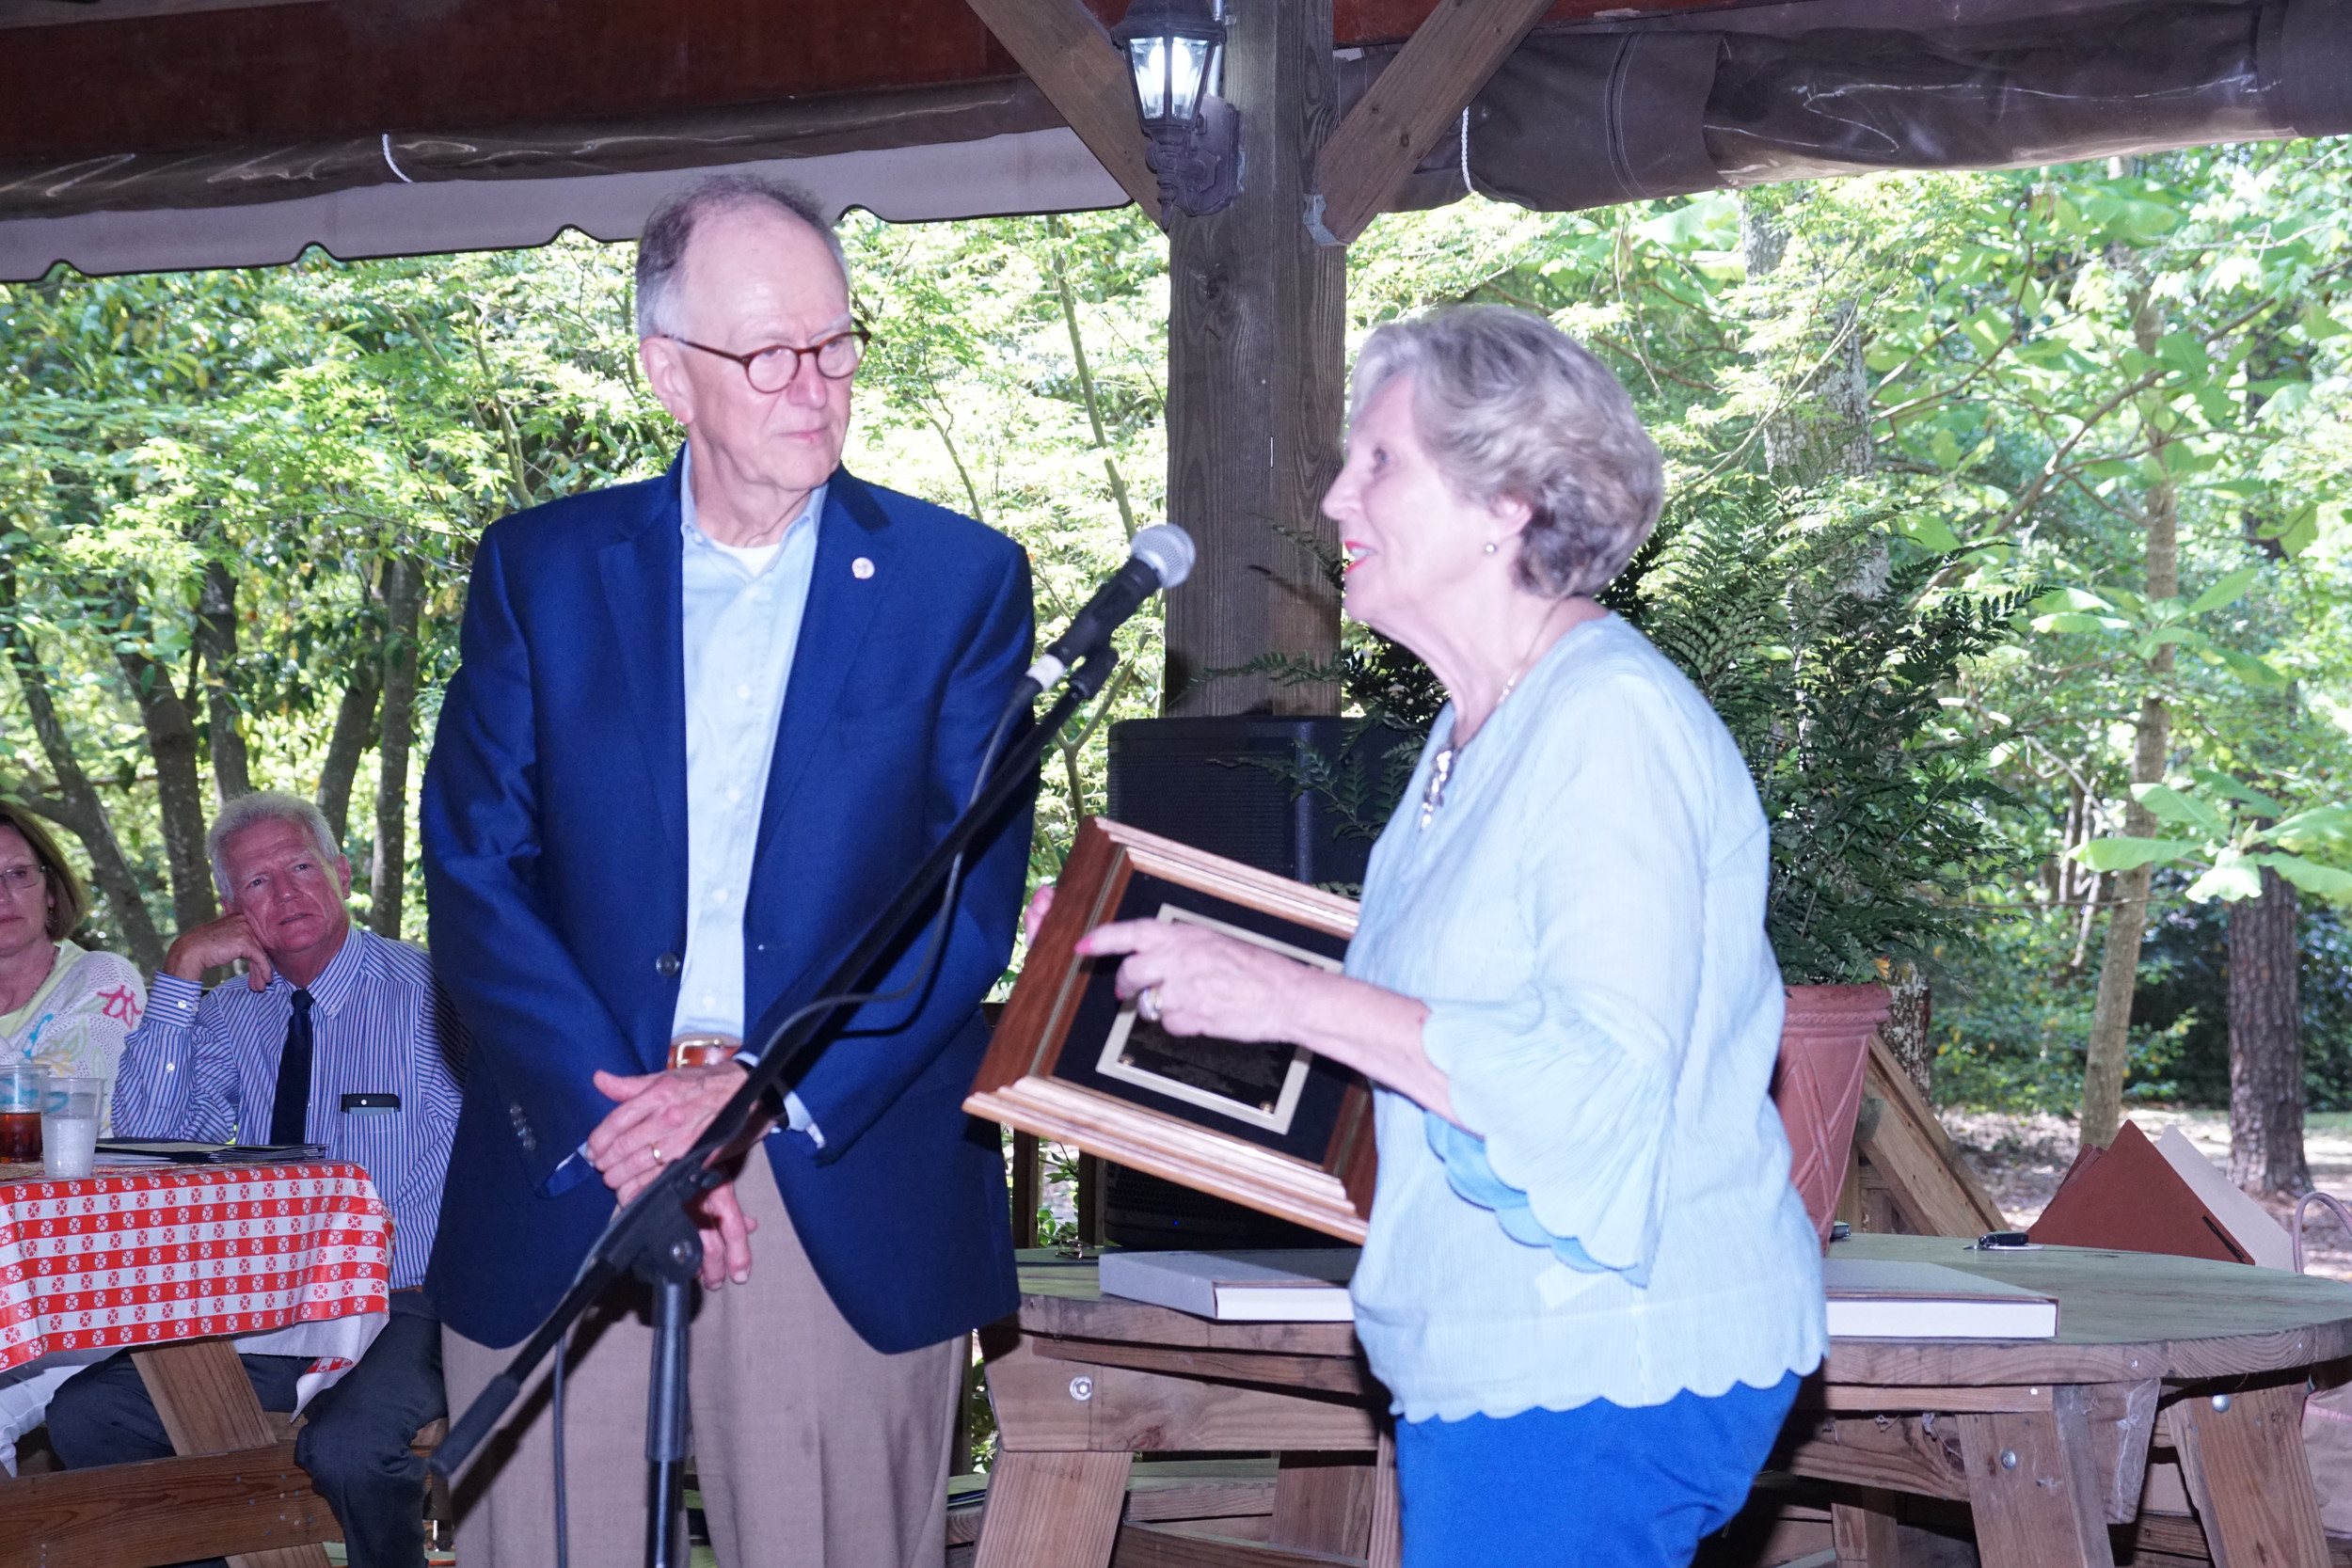 Sister Wimberly accepts her Sumter Community Service Award from Mayor Joe McElveen at the Sumter Volunteer Awards luncheon Thursday at Swan Lake's Heath Pavilion.